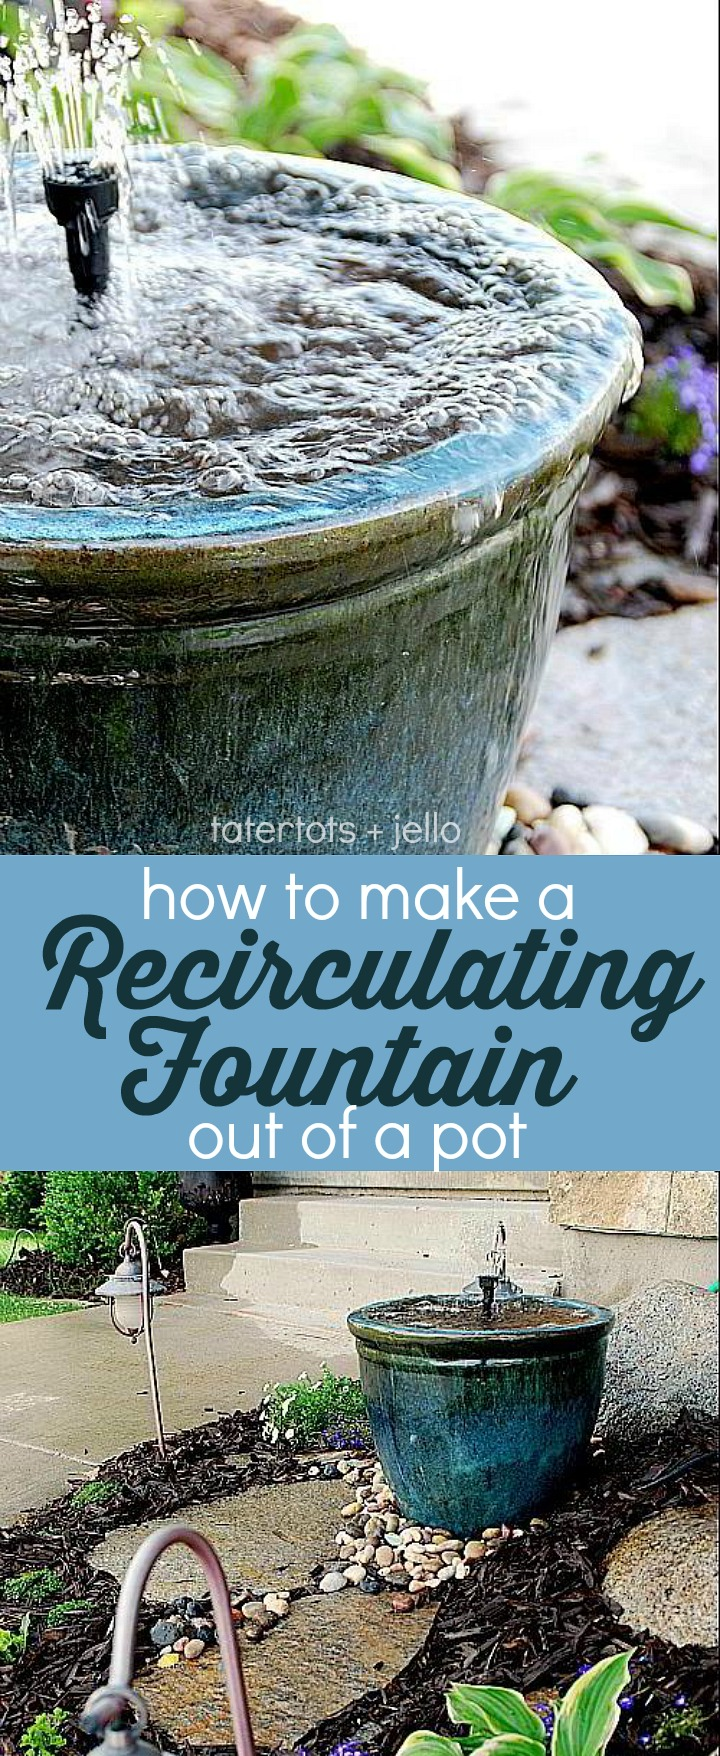 Make A Diy Recirculating Fountain For Your Yard Out Of A Pot